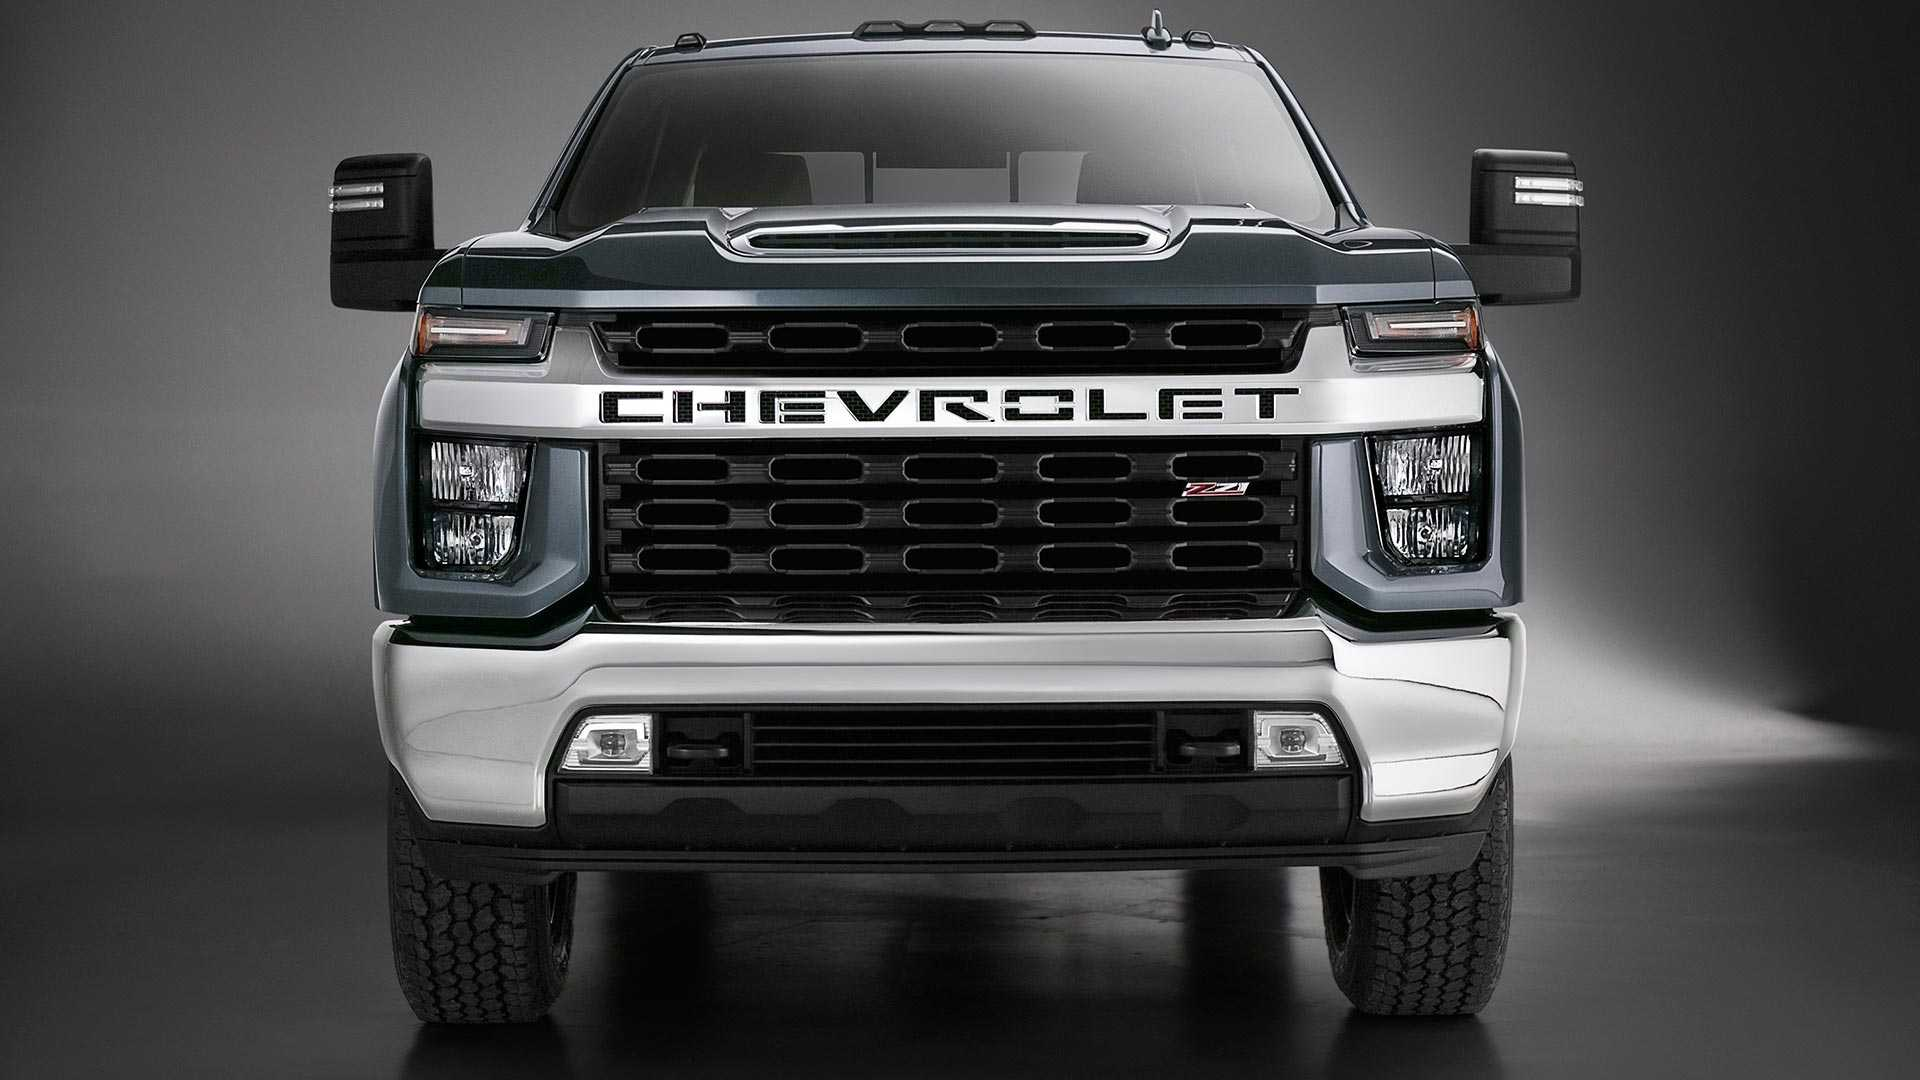 95 All New Chevrolet Heavy Duty 2020 Prices